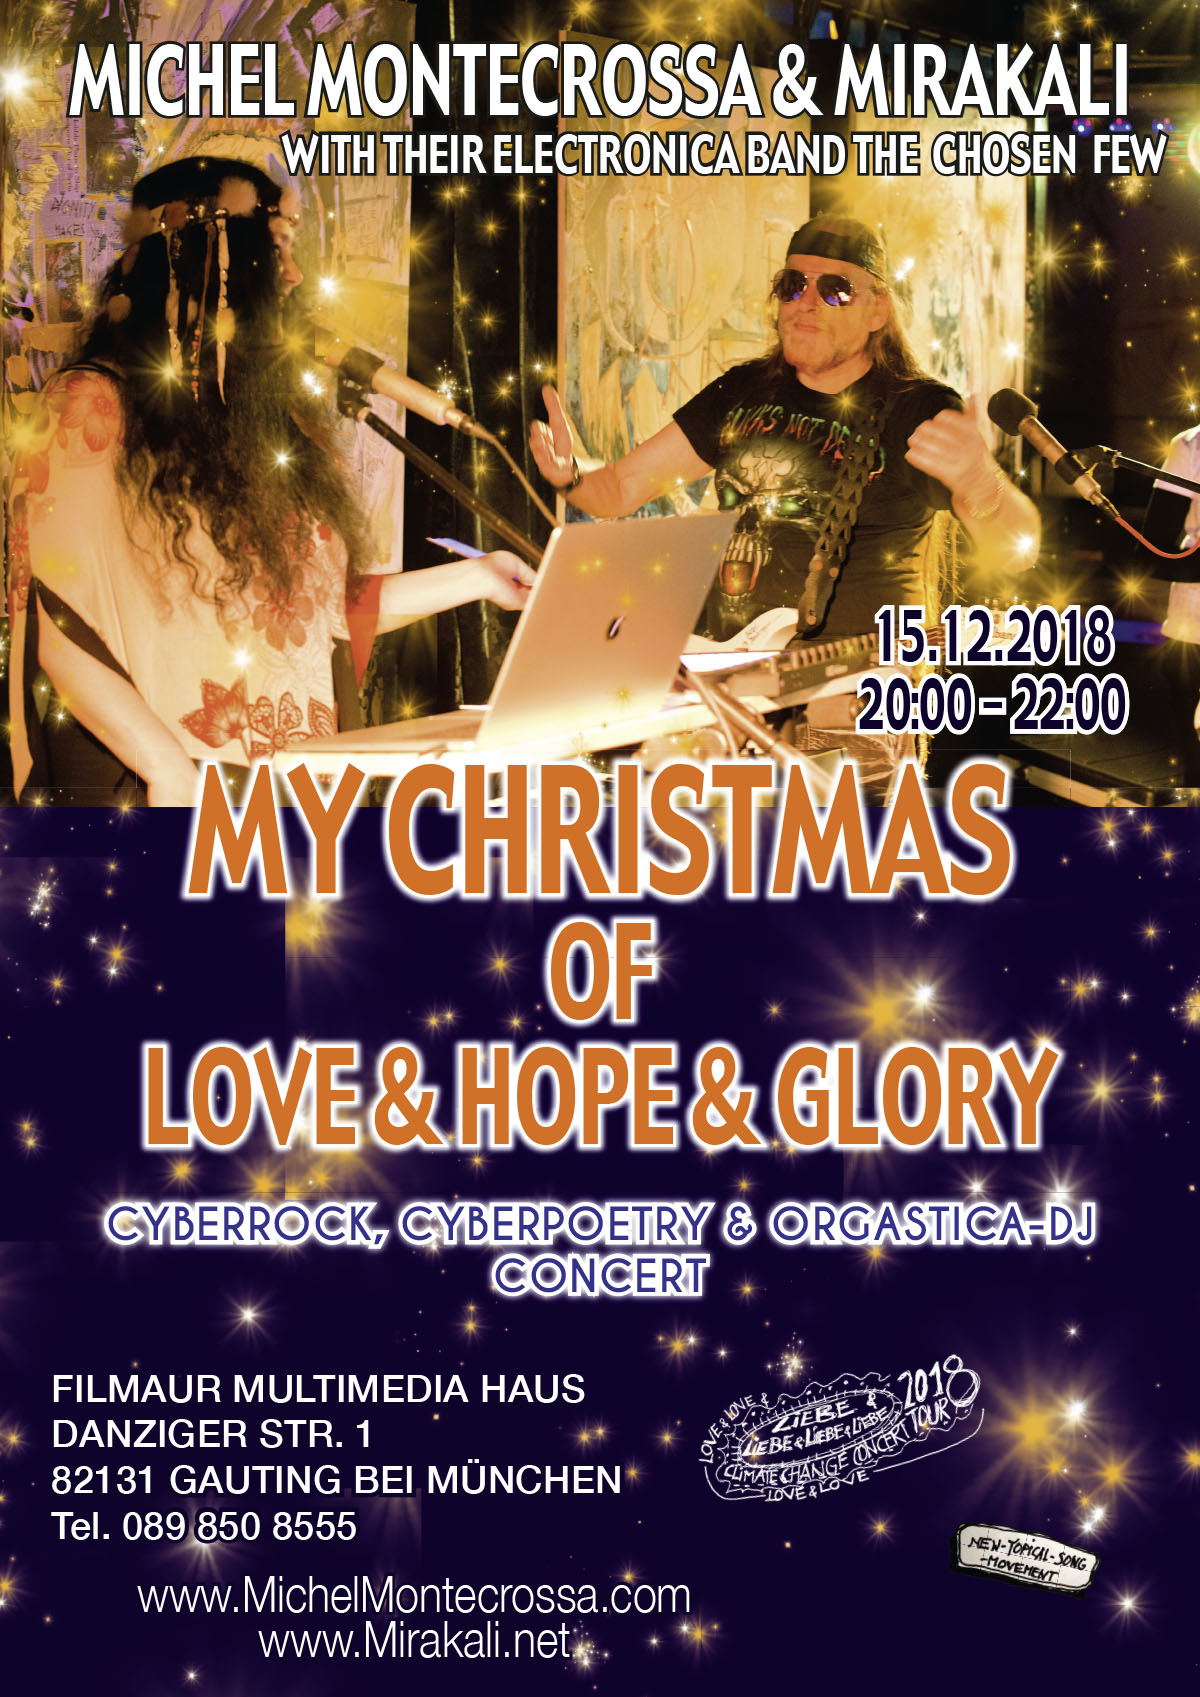 My Christmas of Love & Hope & Glory Concert